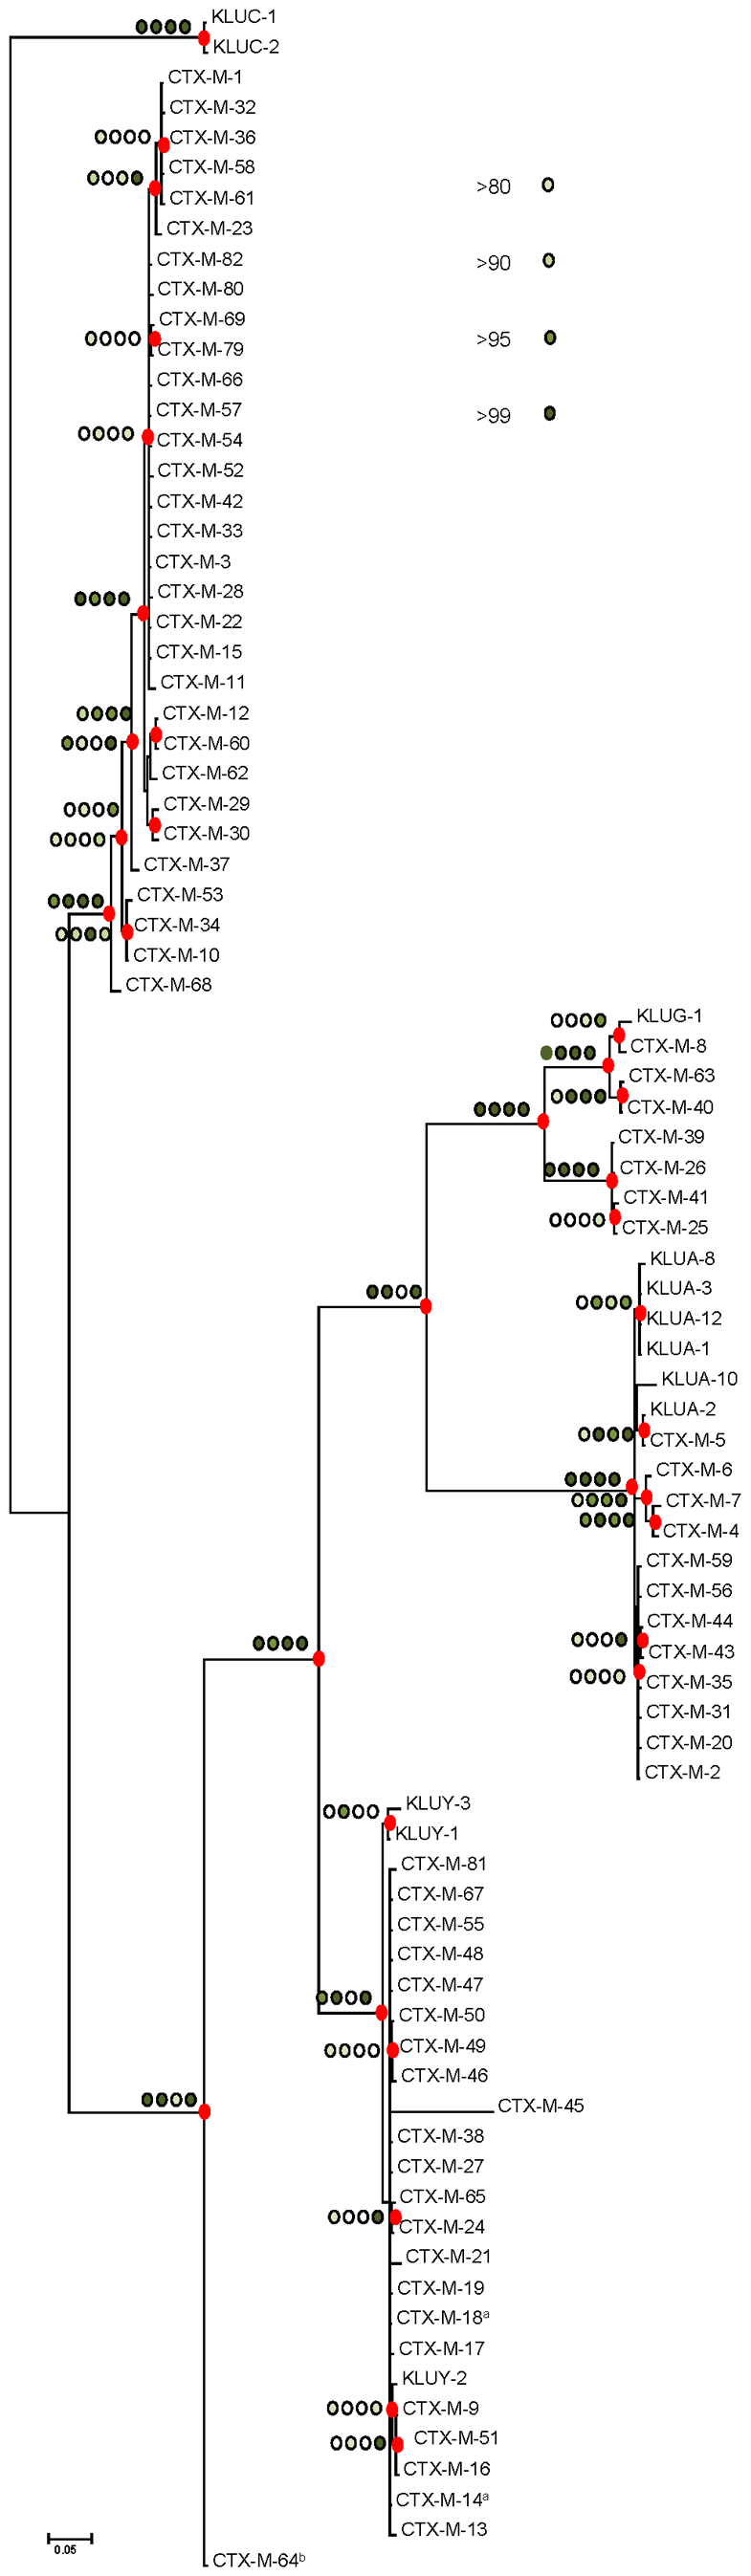 Phylogenetic tree of <i>bla</i><sub>CTX-M</sub> sequences (n = 73) inferred by Bayesian analysis.